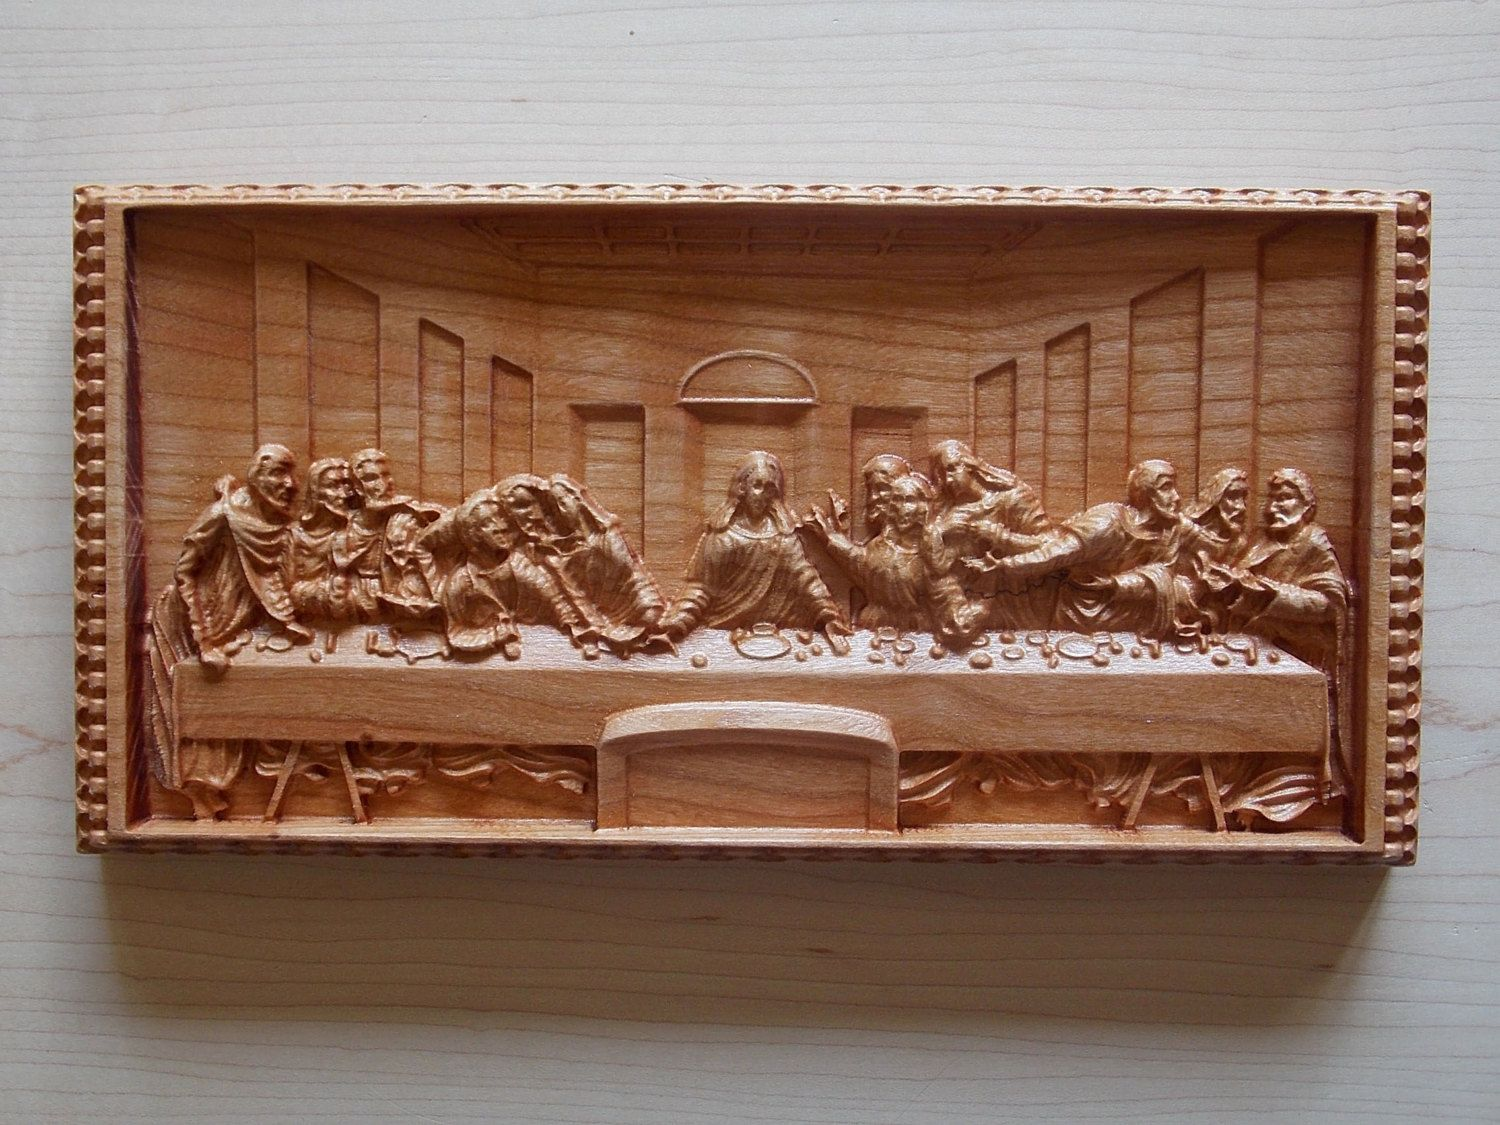 The Last Supper By Leonardo Da Vinci 10x5 Wall Hanging Cherry Wood Art Carving Pinned Pin4etsy